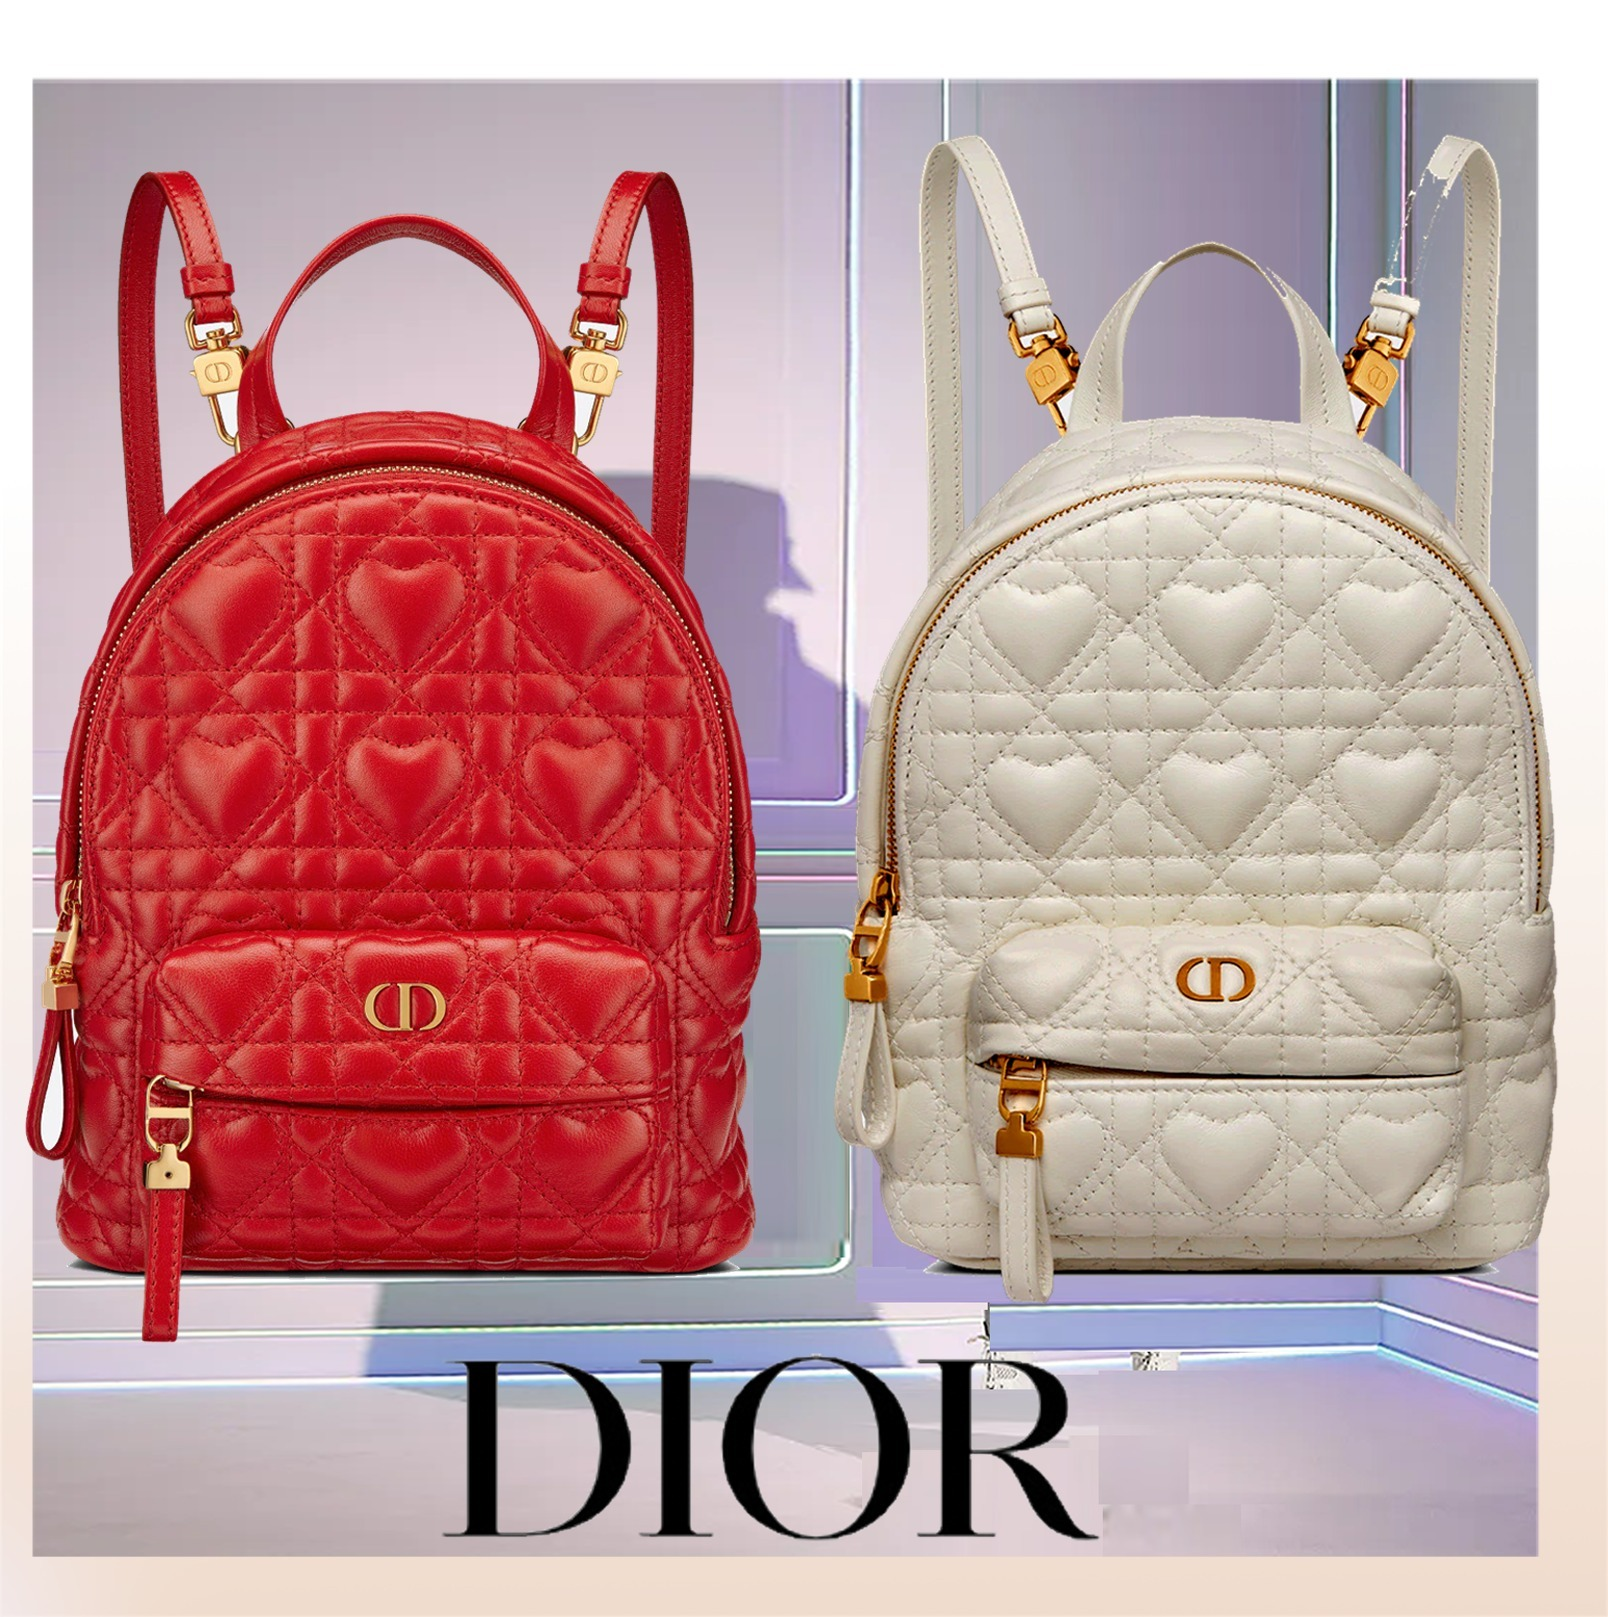 21-22AW新作【すぐ届く国内発送】Dior BACKPACK ミニバッグ (Dior/バックパック・リュック) M9222UNGH_M030  M9222UNGH_M35R